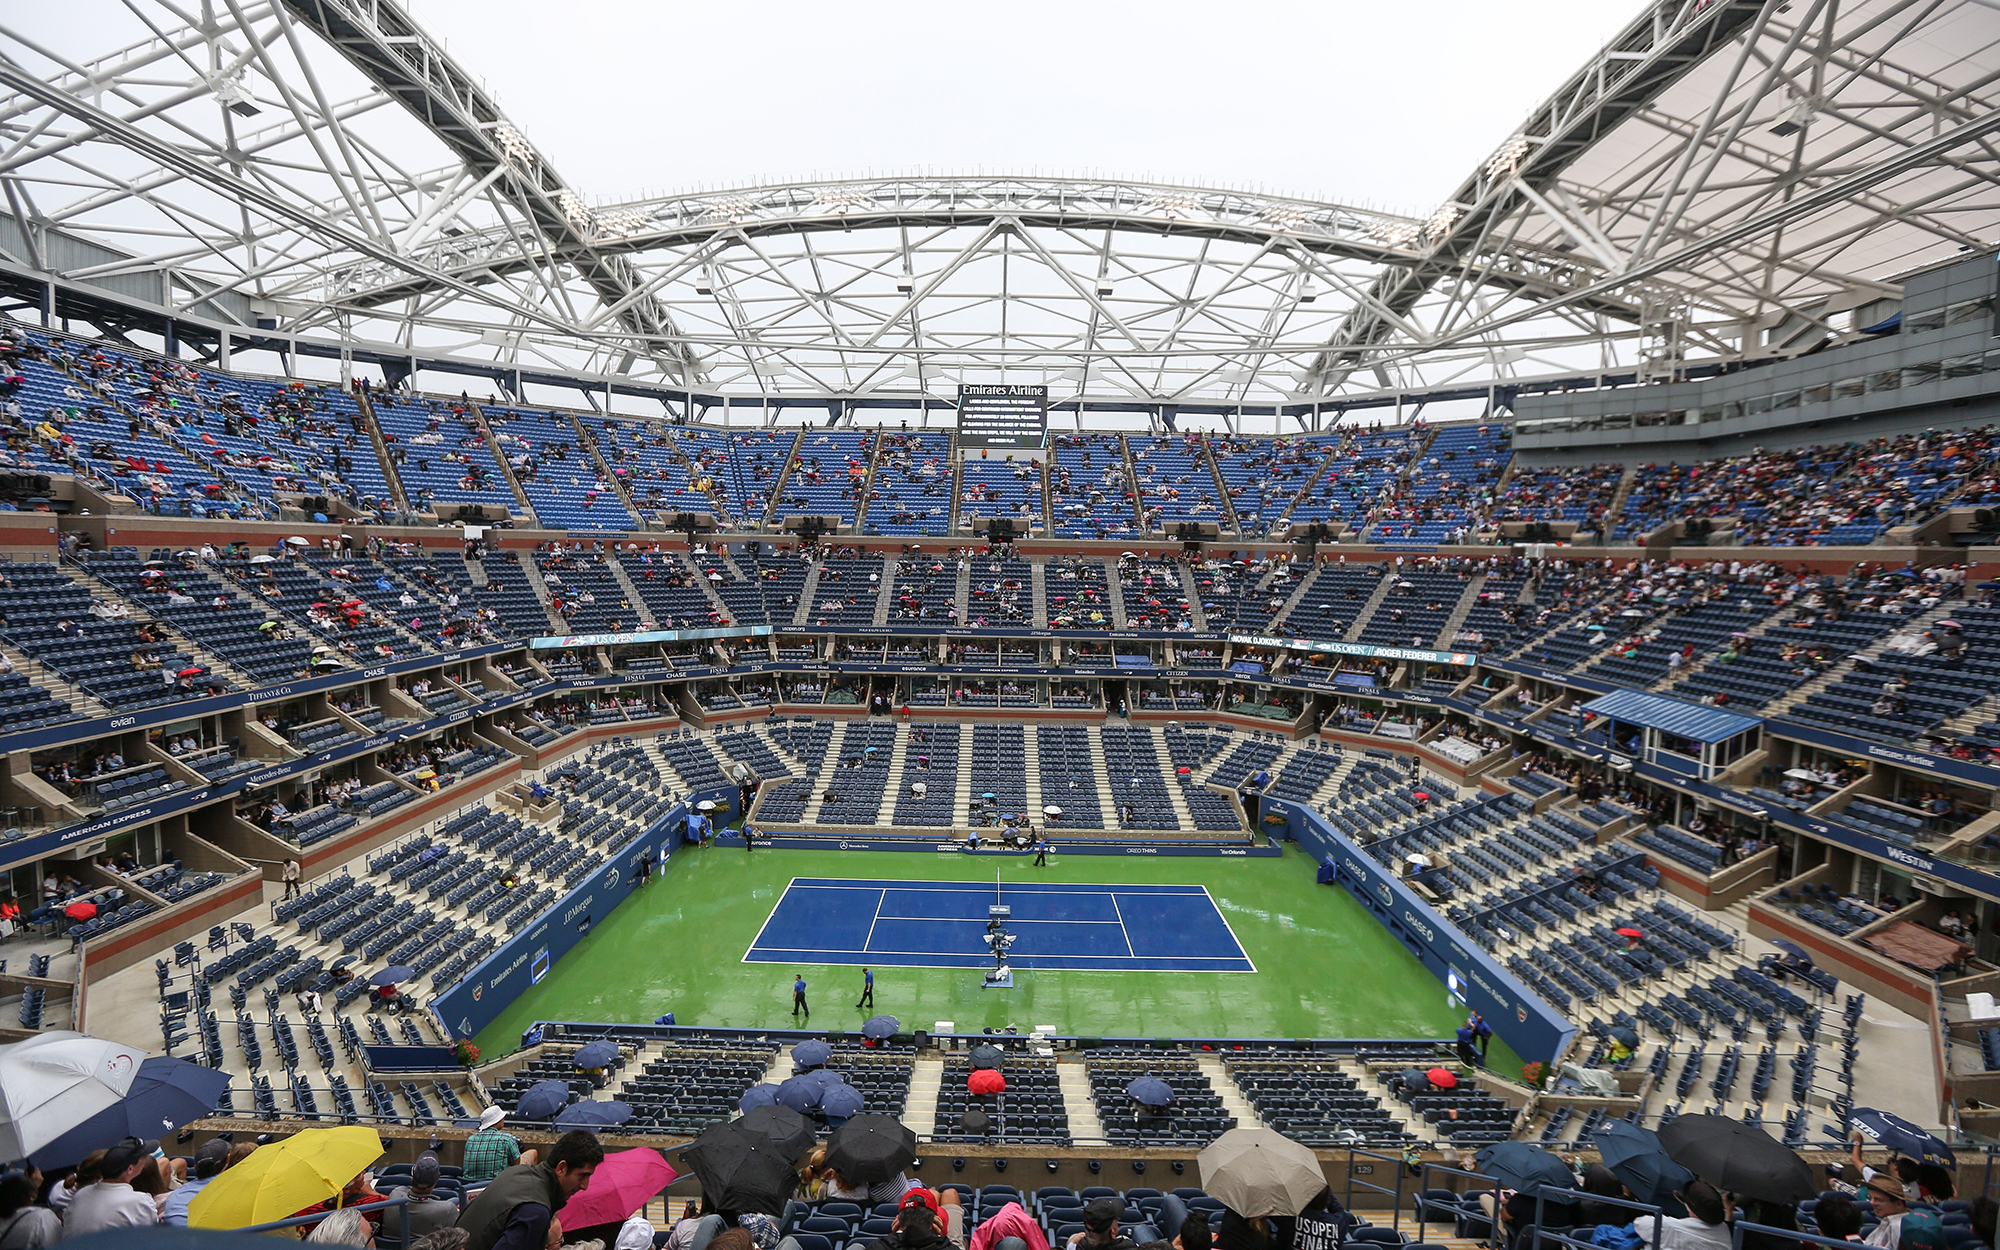 NEW YORK, NY - SEPTEMBER 13: The final match of Novak Djokovic and Roger Federer is delayed due to rain ahead of men's singles final of the 2015 US Open at the Arthur Ashe Stadium on September 13, 2015 in New York City. The match will be played after the